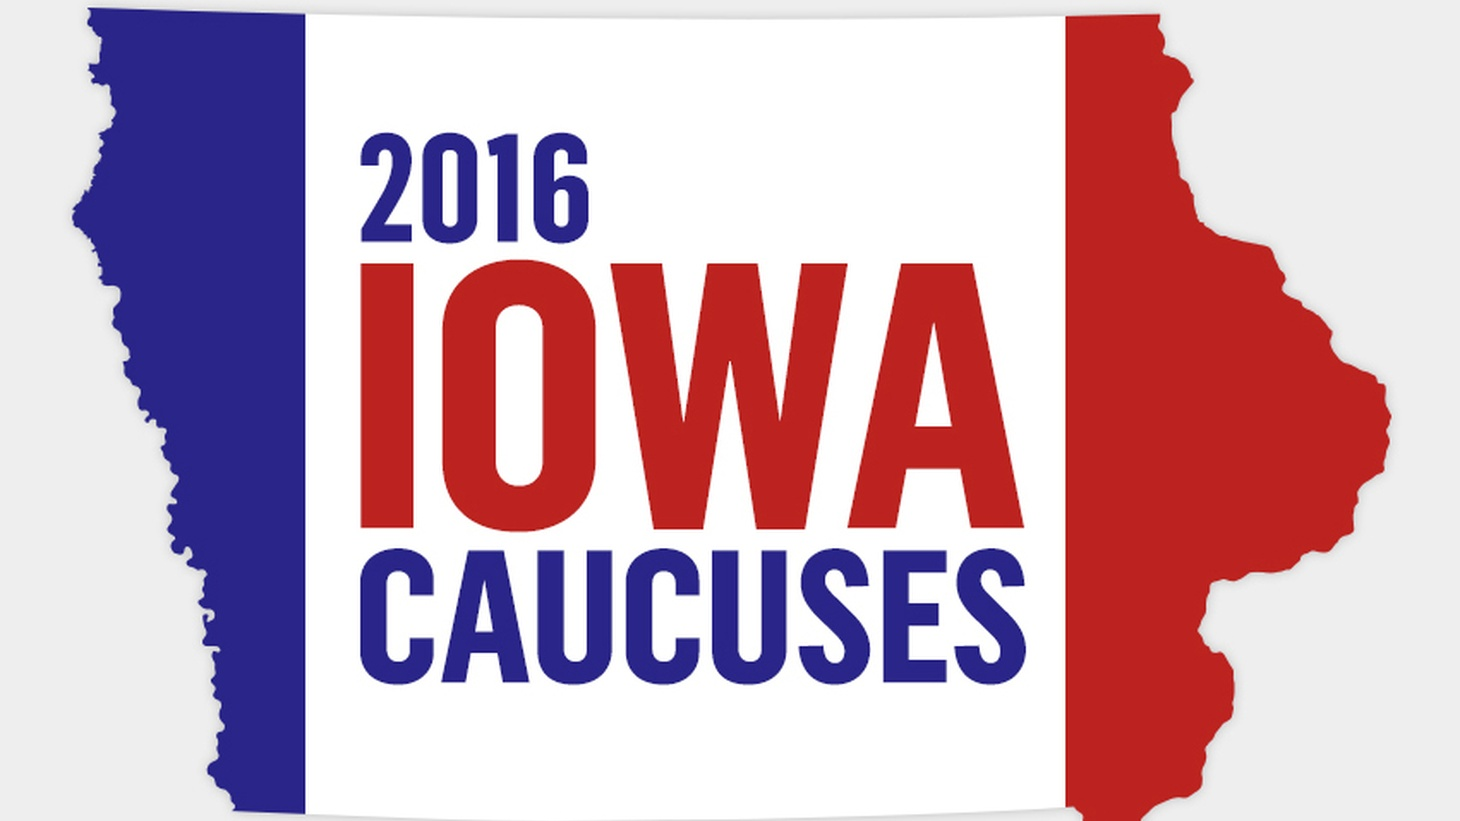 On Monday, February 1, residents of Iowa will attend precinct caucuses to elect delegates to county conventions.  KCRW will carry NPR's coverage of the caucuses from 6-8pm.